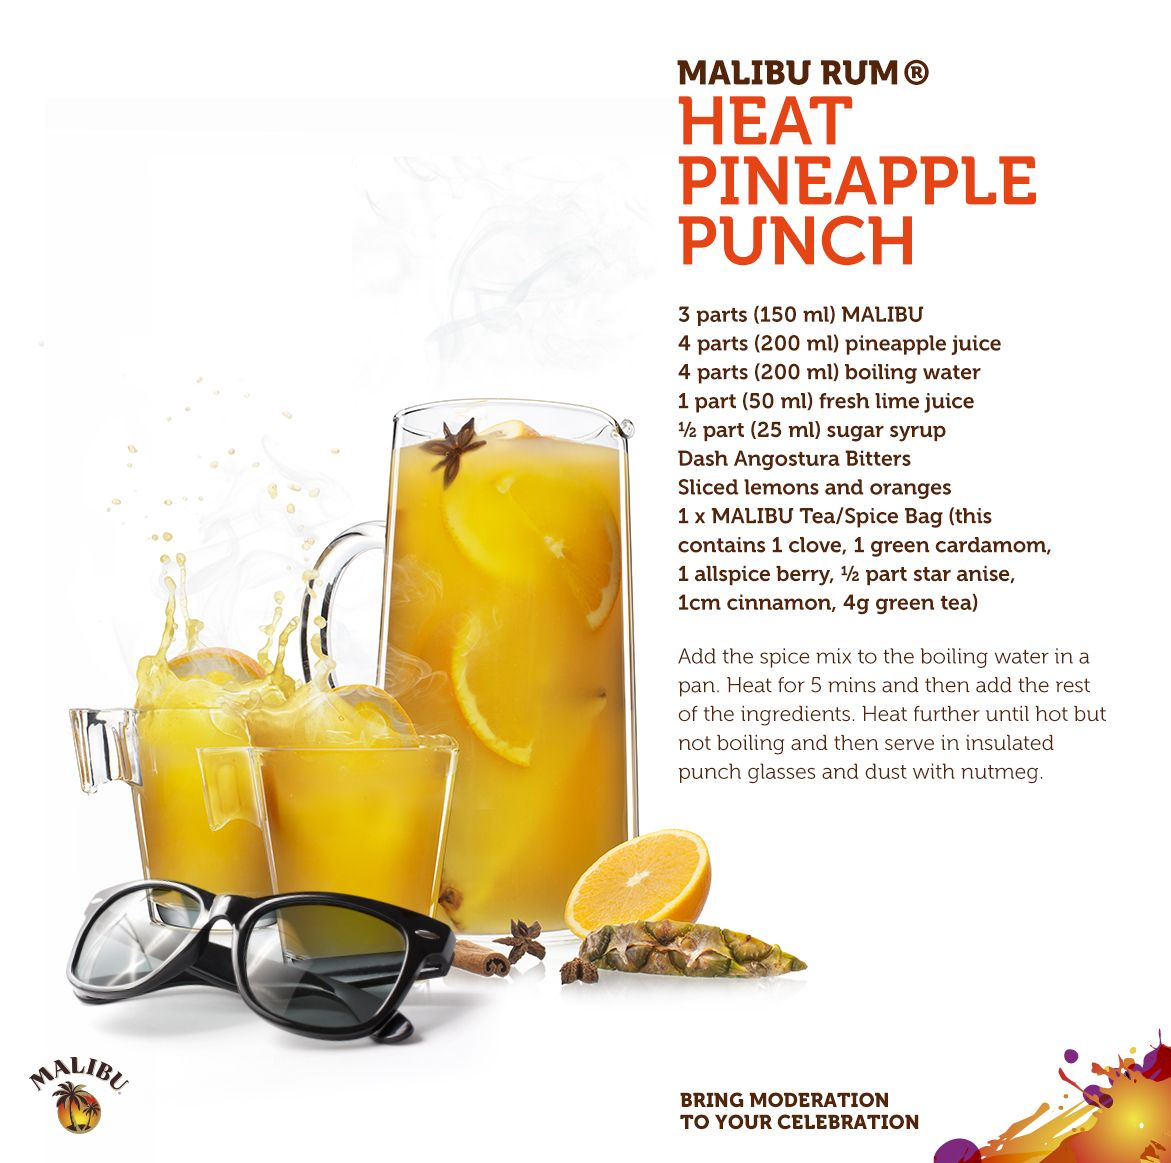 The Malibu Rum Heat Pineapple Punch. For When The Sun Goes